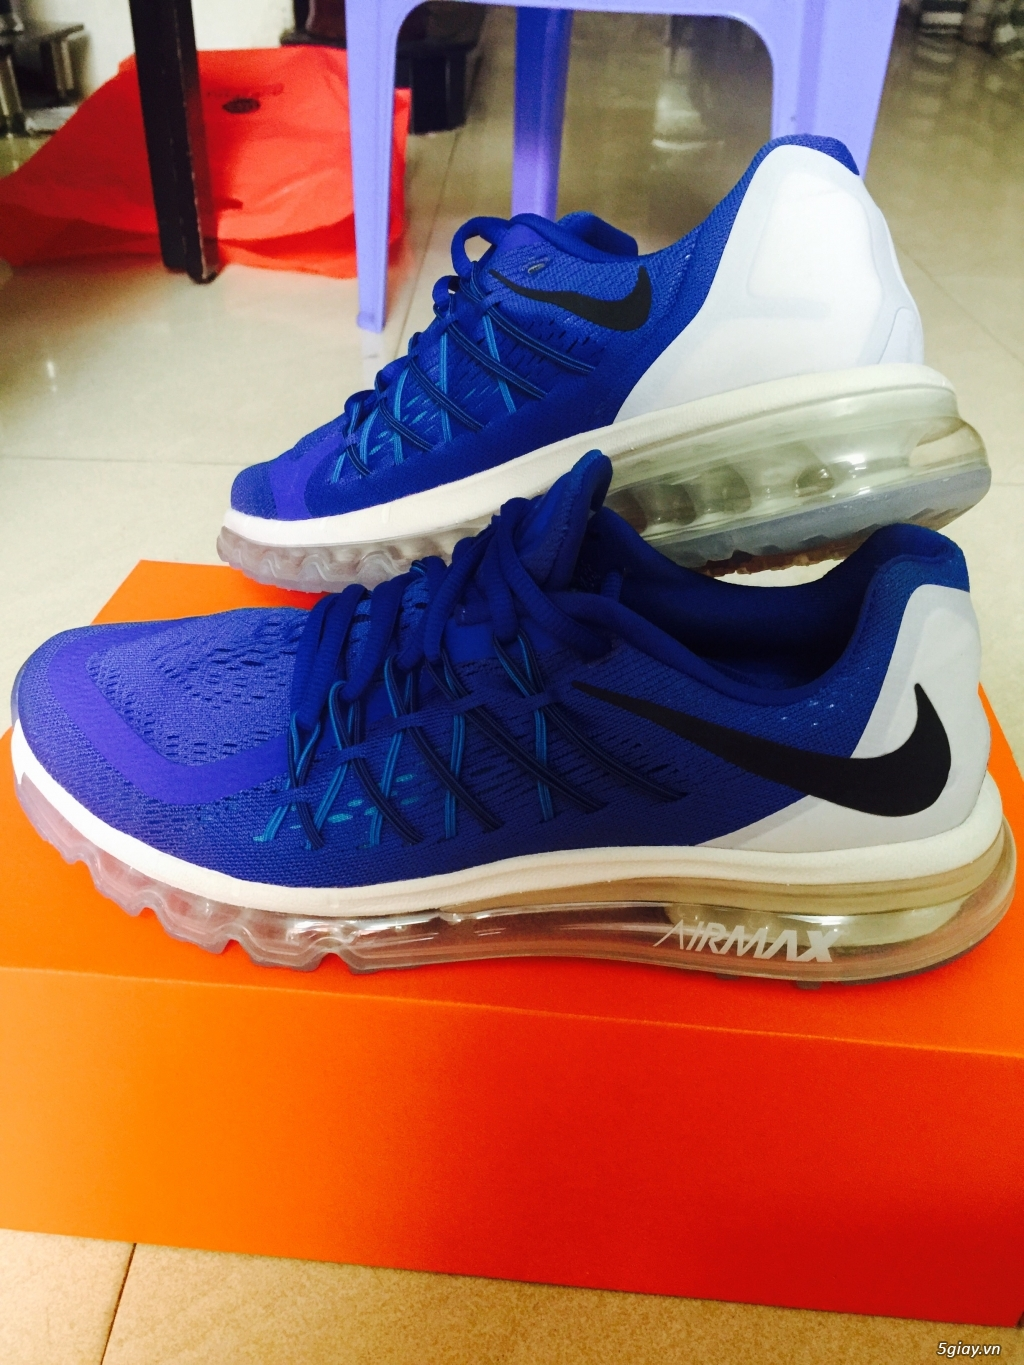 [NIKE] Airmax 2015 blue and white size 41 - 2